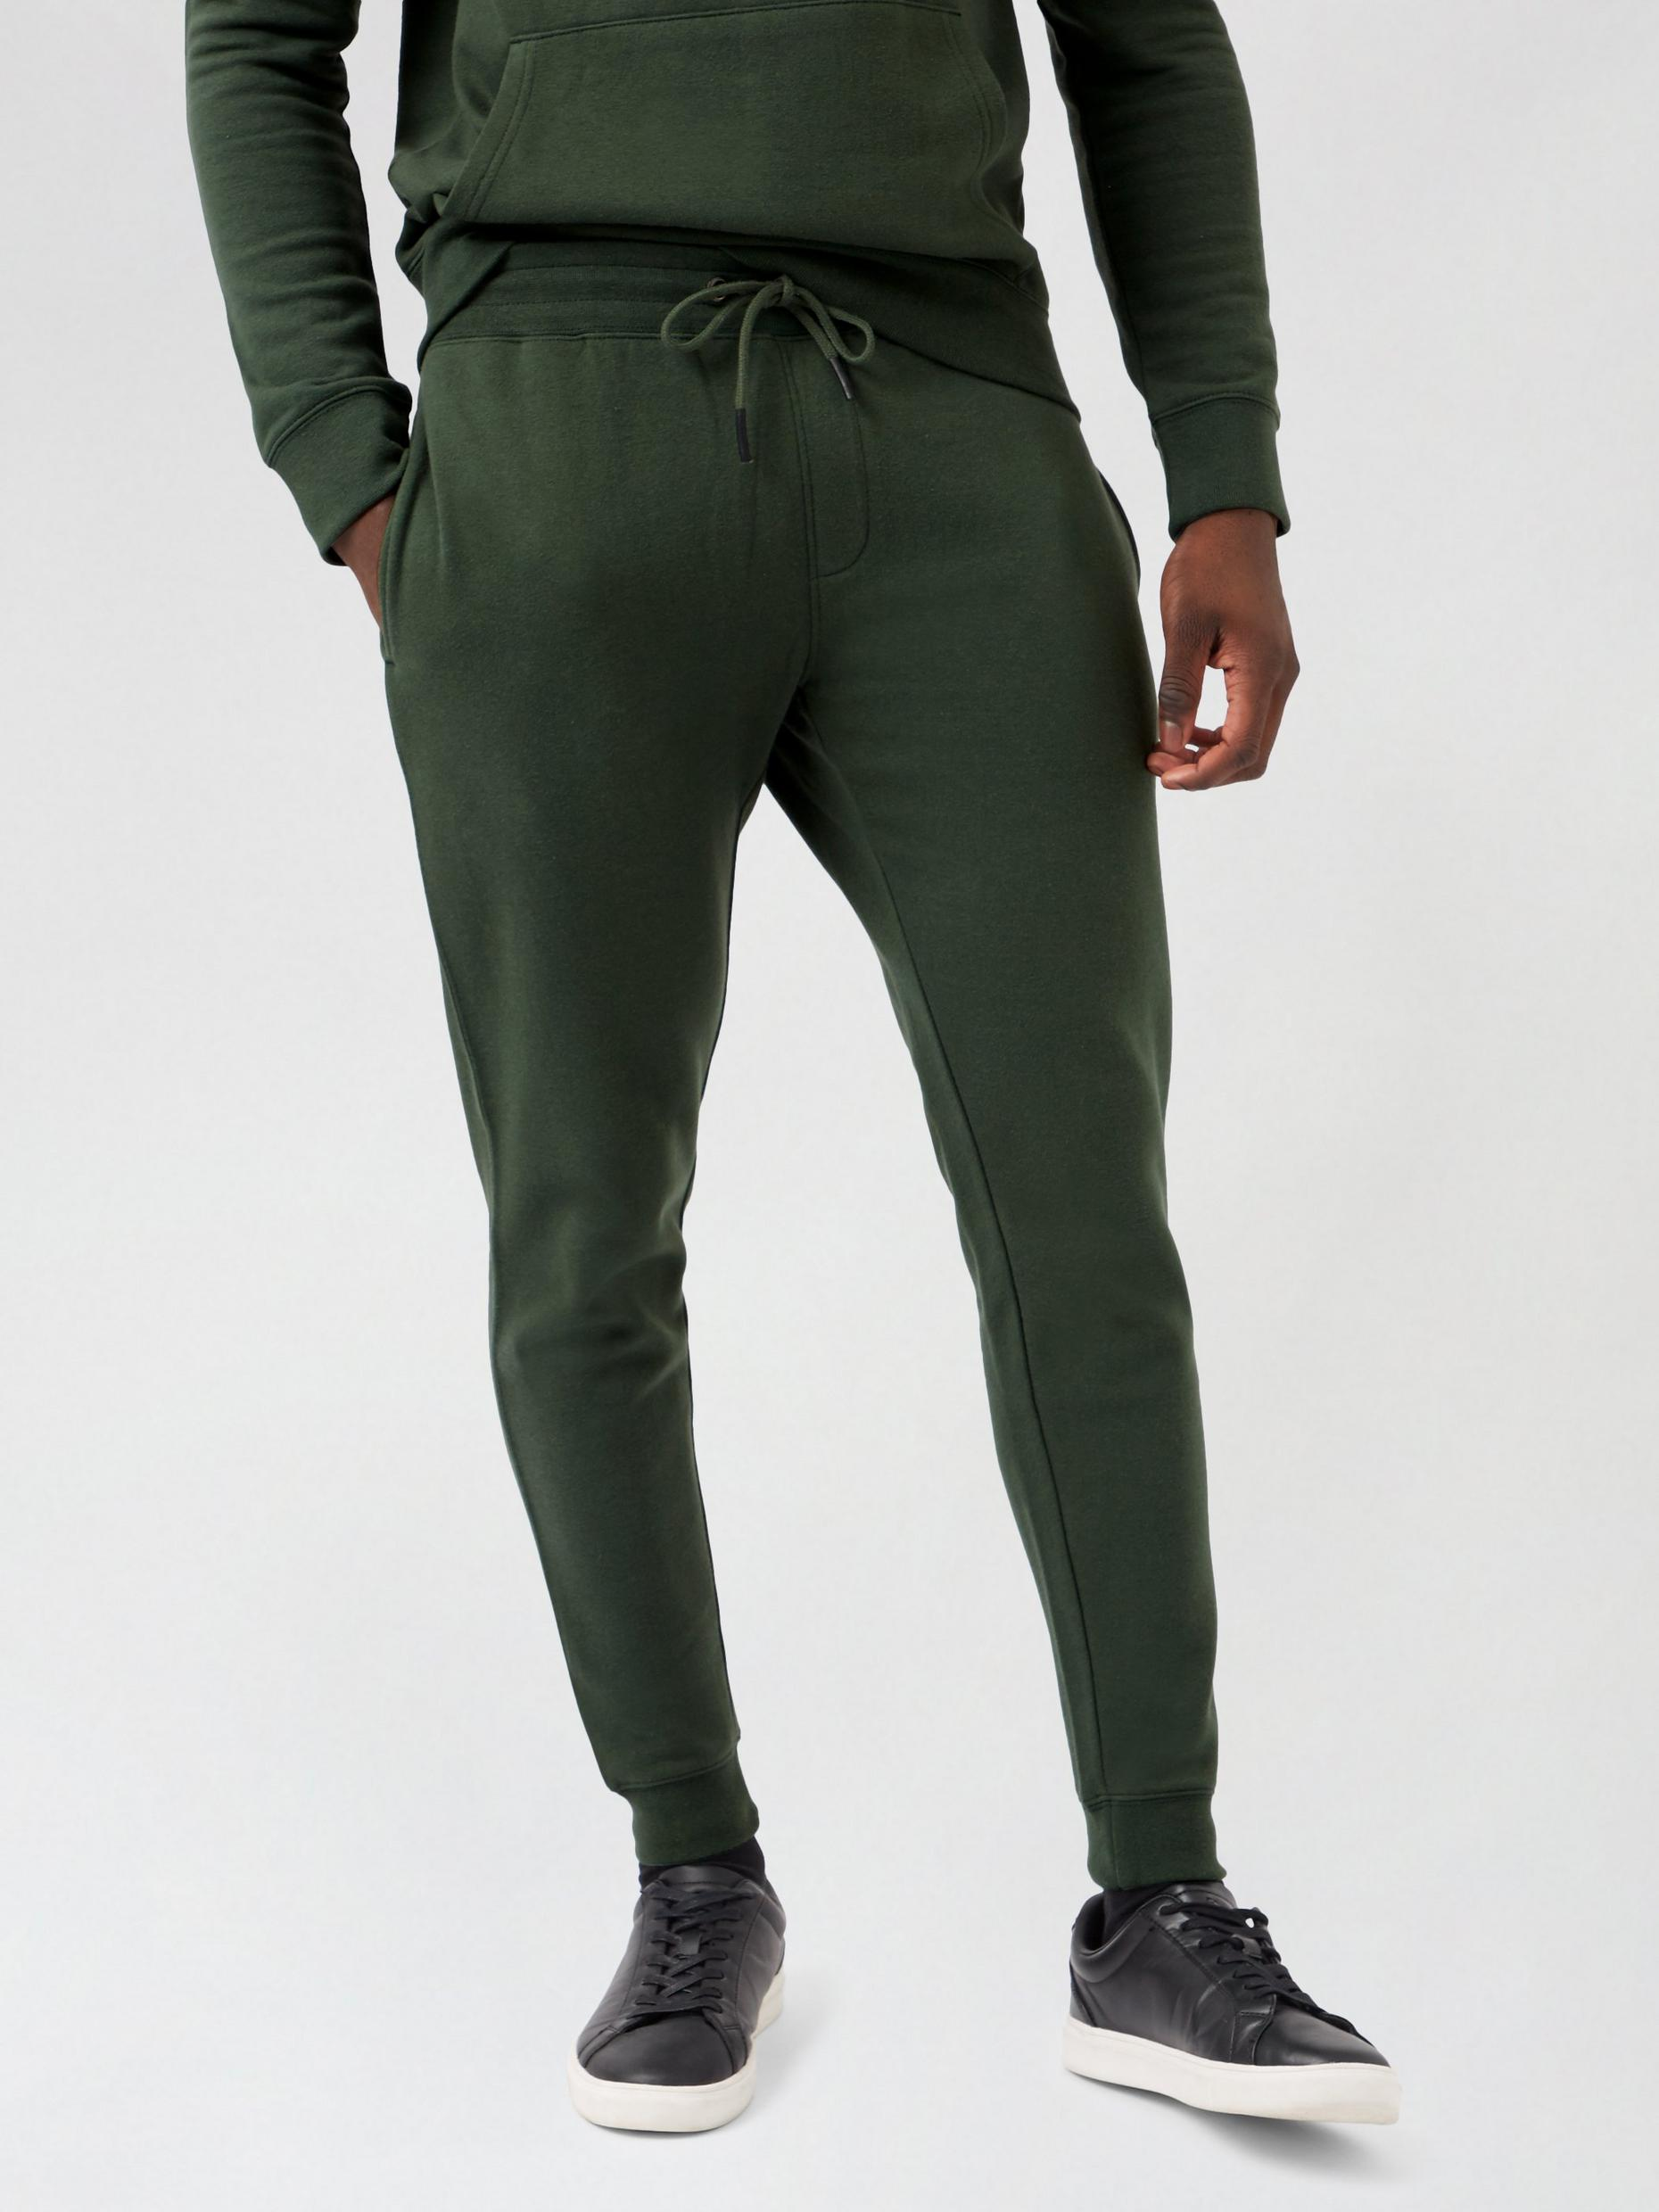 Khaki Muscle Fit Joggers